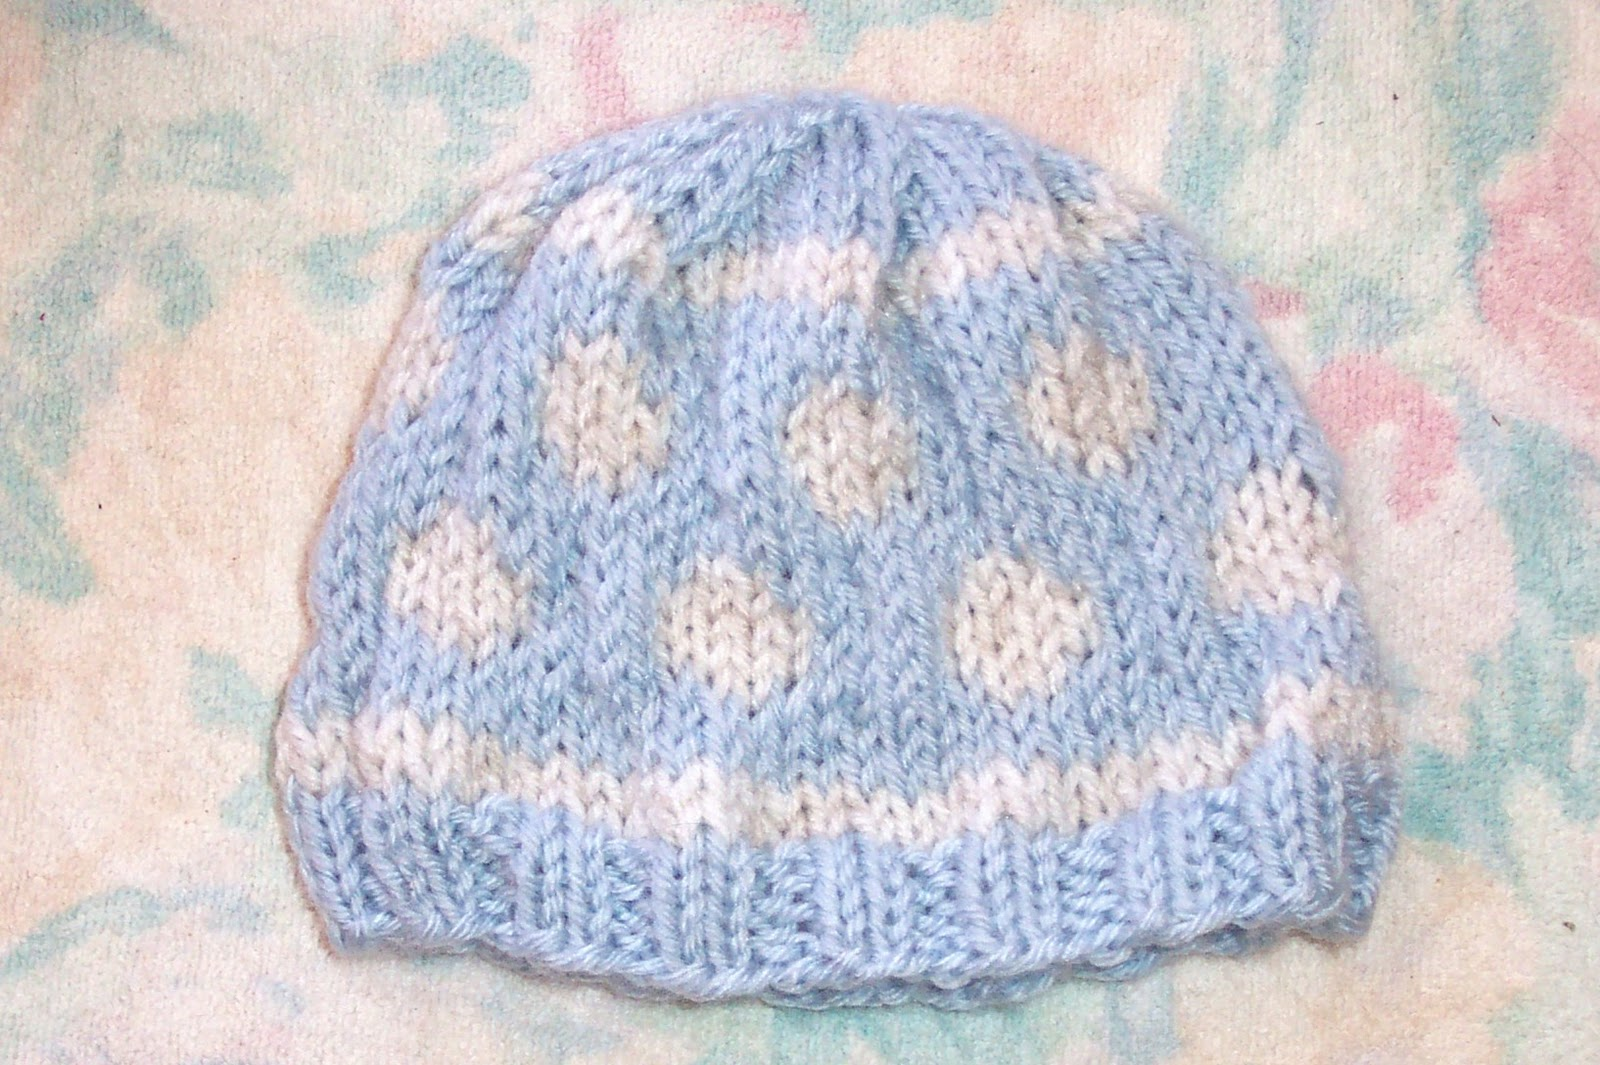 Free Baby Hat Knitting Patterns : SmoothFox Crochet and Knit: SmoothFoxs Baby Bubbles Knit Hat - Free Pattern